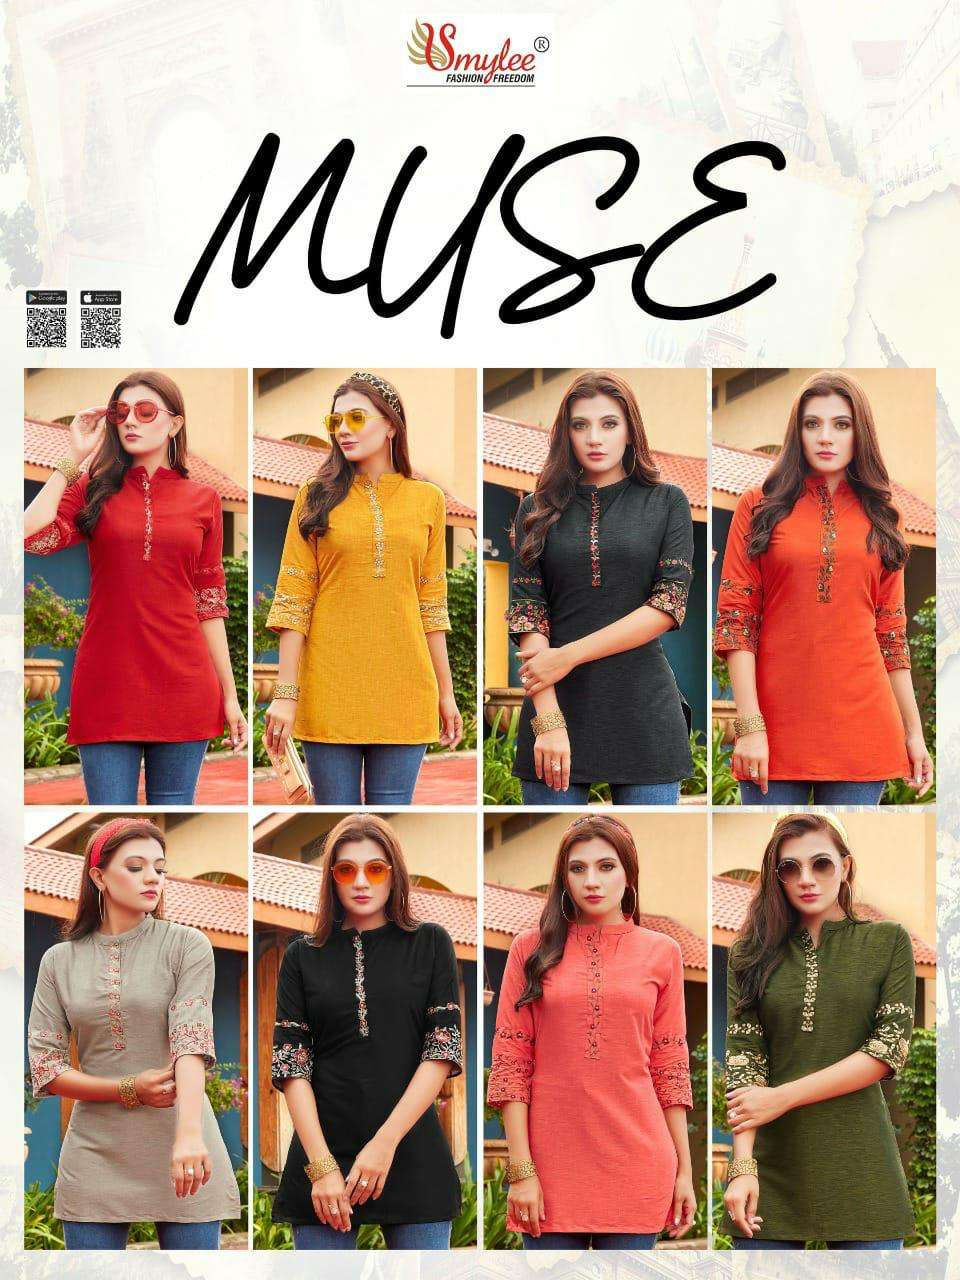 Smylee fashion muse Rayon With Embroidery Work Short Tops collection